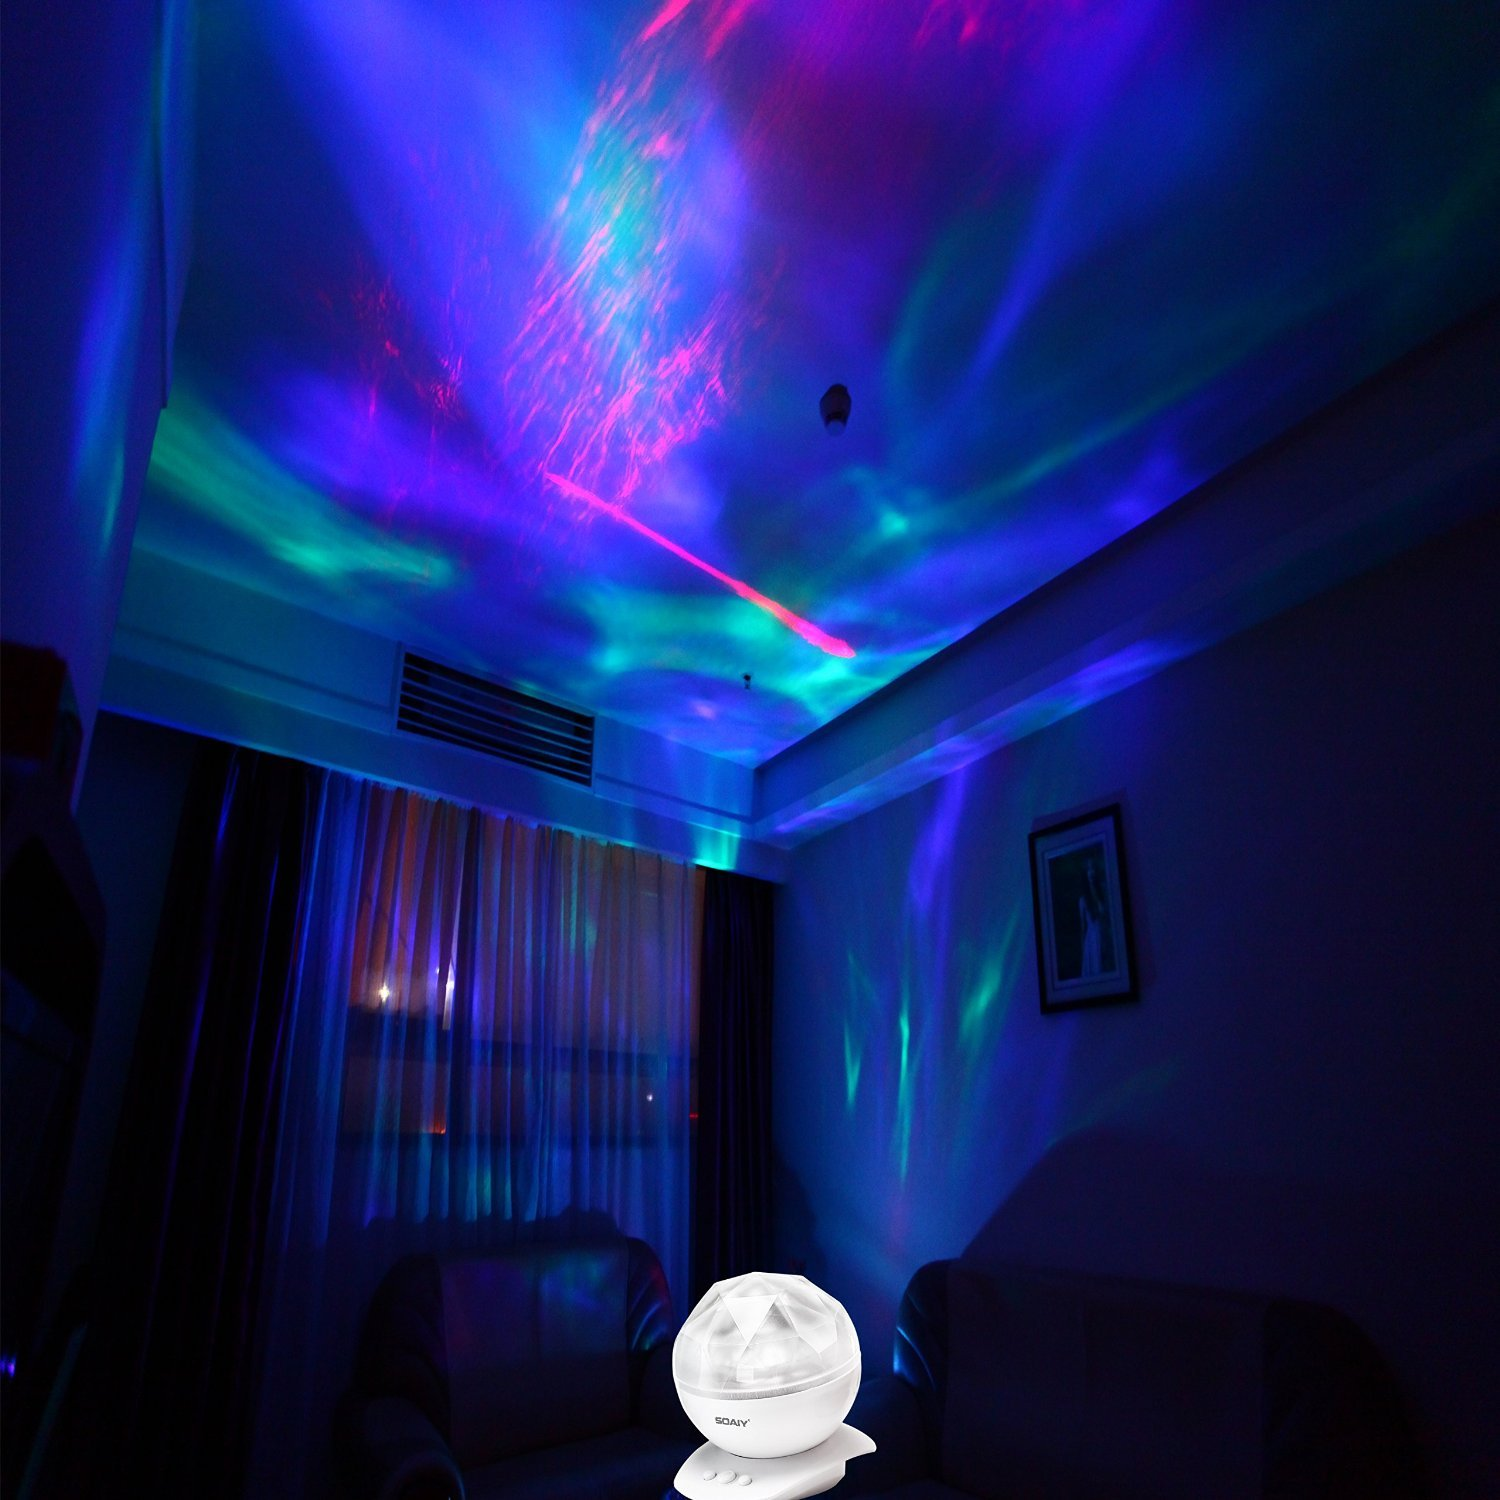 Superior SOAIY Rotation Sleep Soothing Color Changing Aurora Night Light Projector  With Build In Speaker, Relaxing Light Show, Mood Light For Baby Nursery, ...